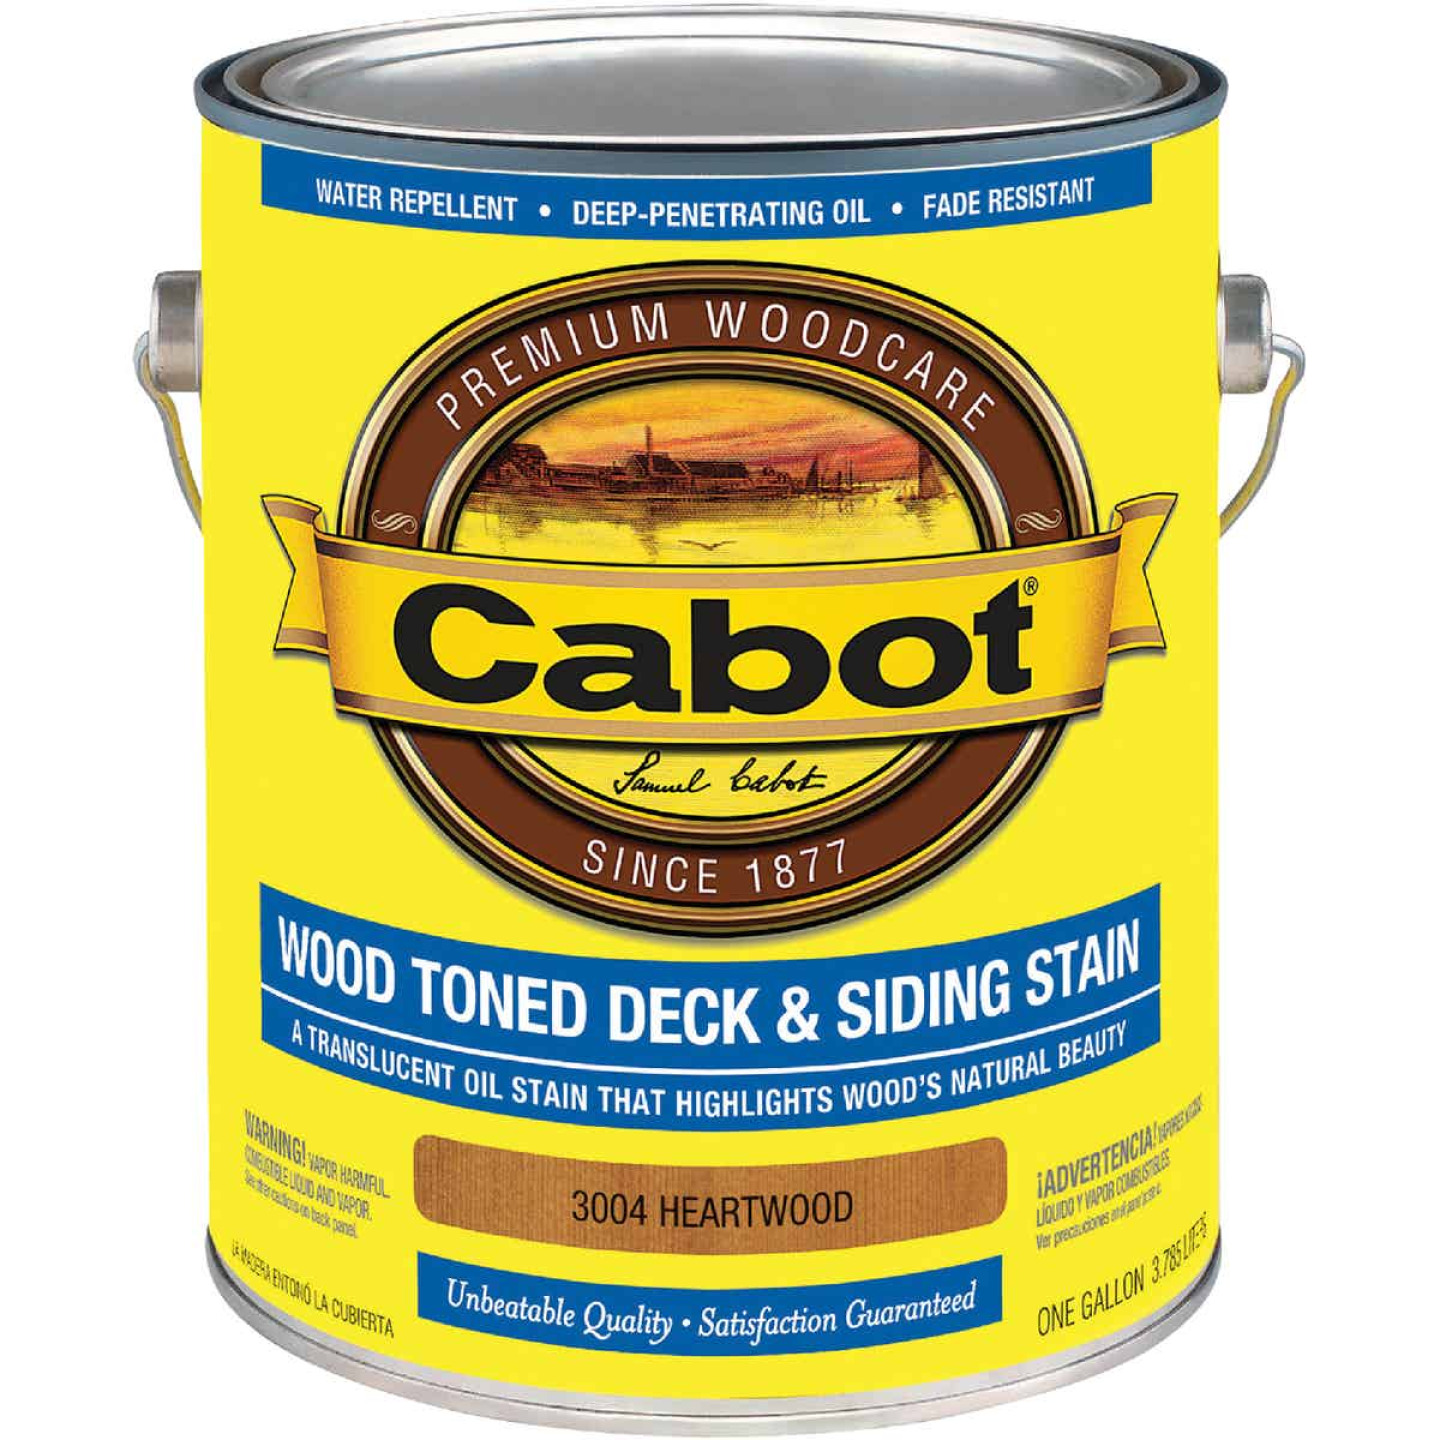 Cabot Alkyd/Oil Base Wood Toned Deck & Siding Stain, Heartwood, 1 Gal. Image 1